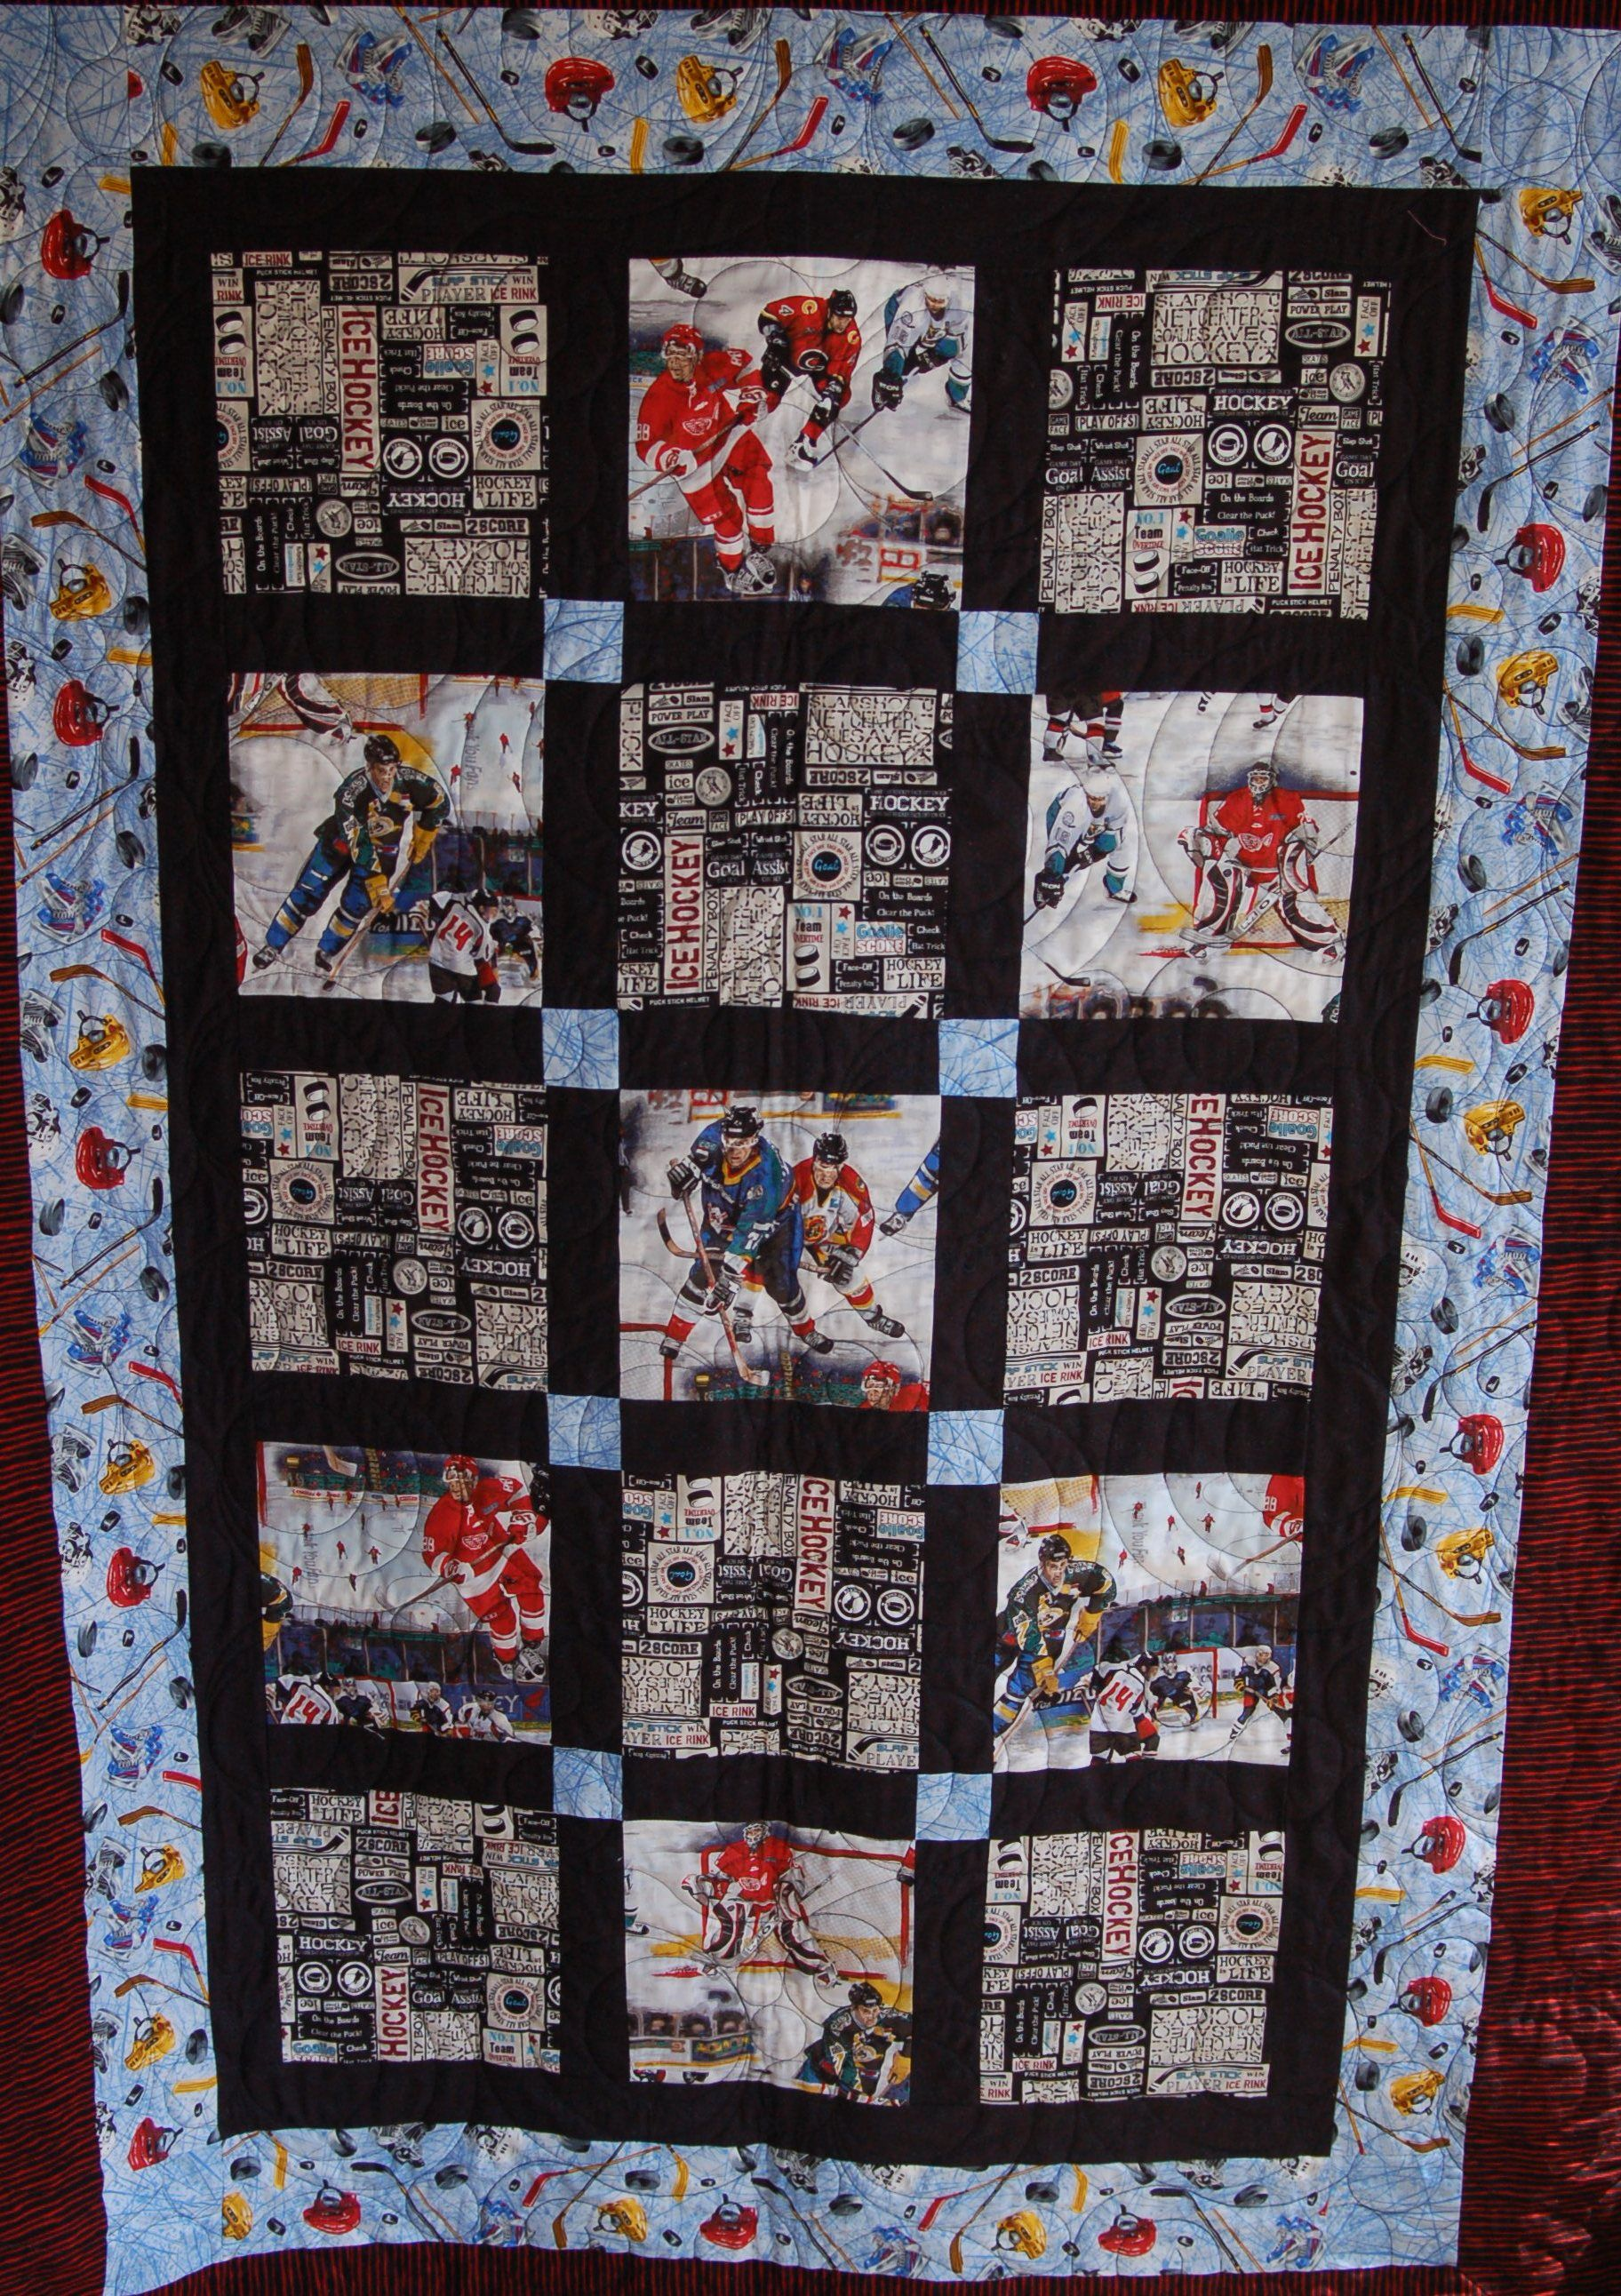 Quilt Patterns For Sports : Hockey Quilt Deb Gervais Creations Pinterest Hockey, Patterns and Sewing projects